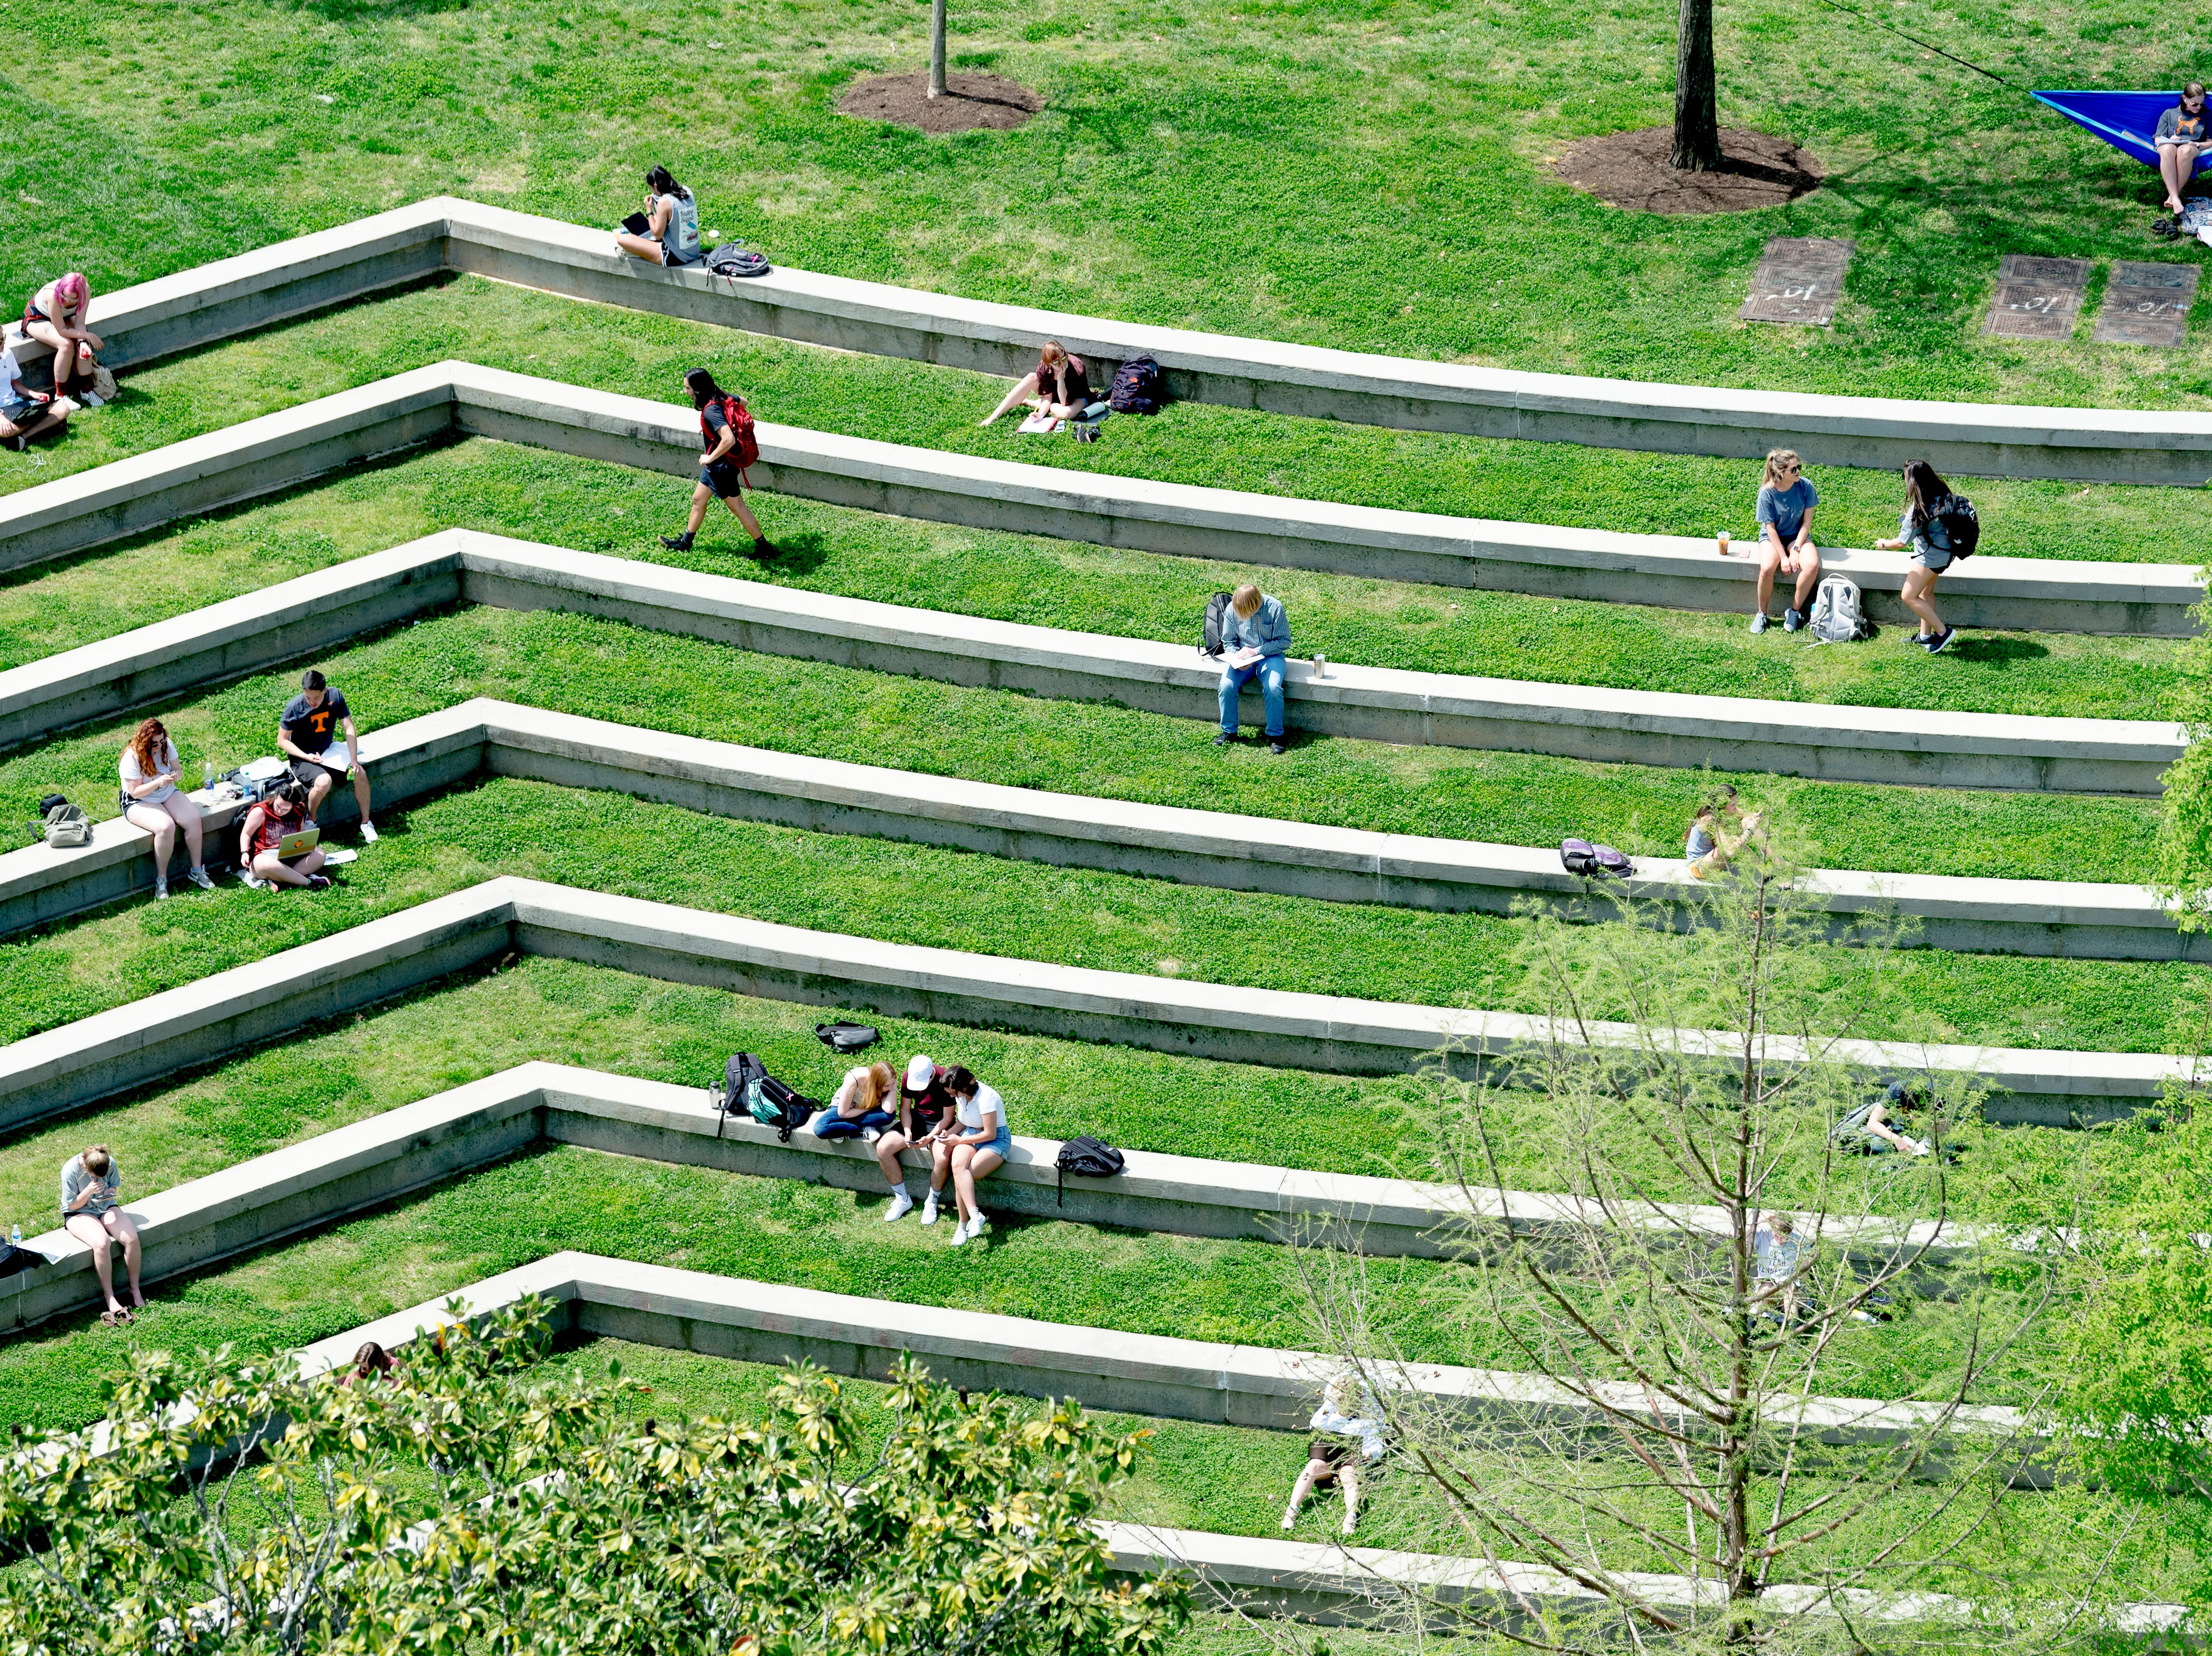 University of Tennessee students soak up some sun at the Humanities Amphitheater on campus in Knoxville, Tennessee on Thursday, April 11, 2019. Temperatures are expected to stay relatively warm this week along with some rain showers.